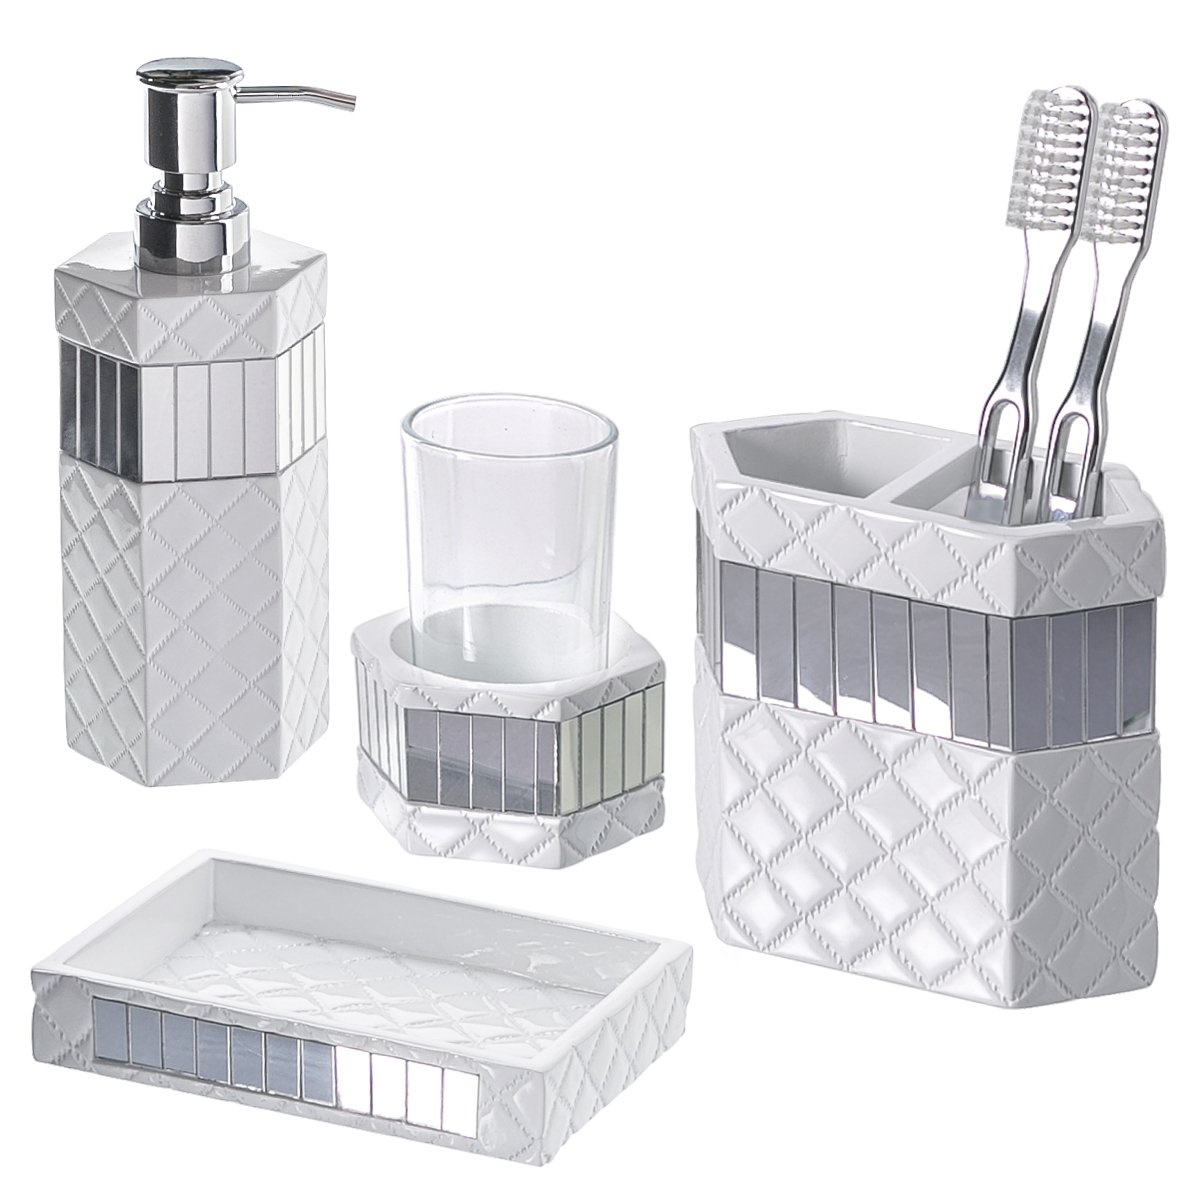 4 piece quilted mirror bathroom accessories set with soap for Bathroom soap dispensers bath accessories